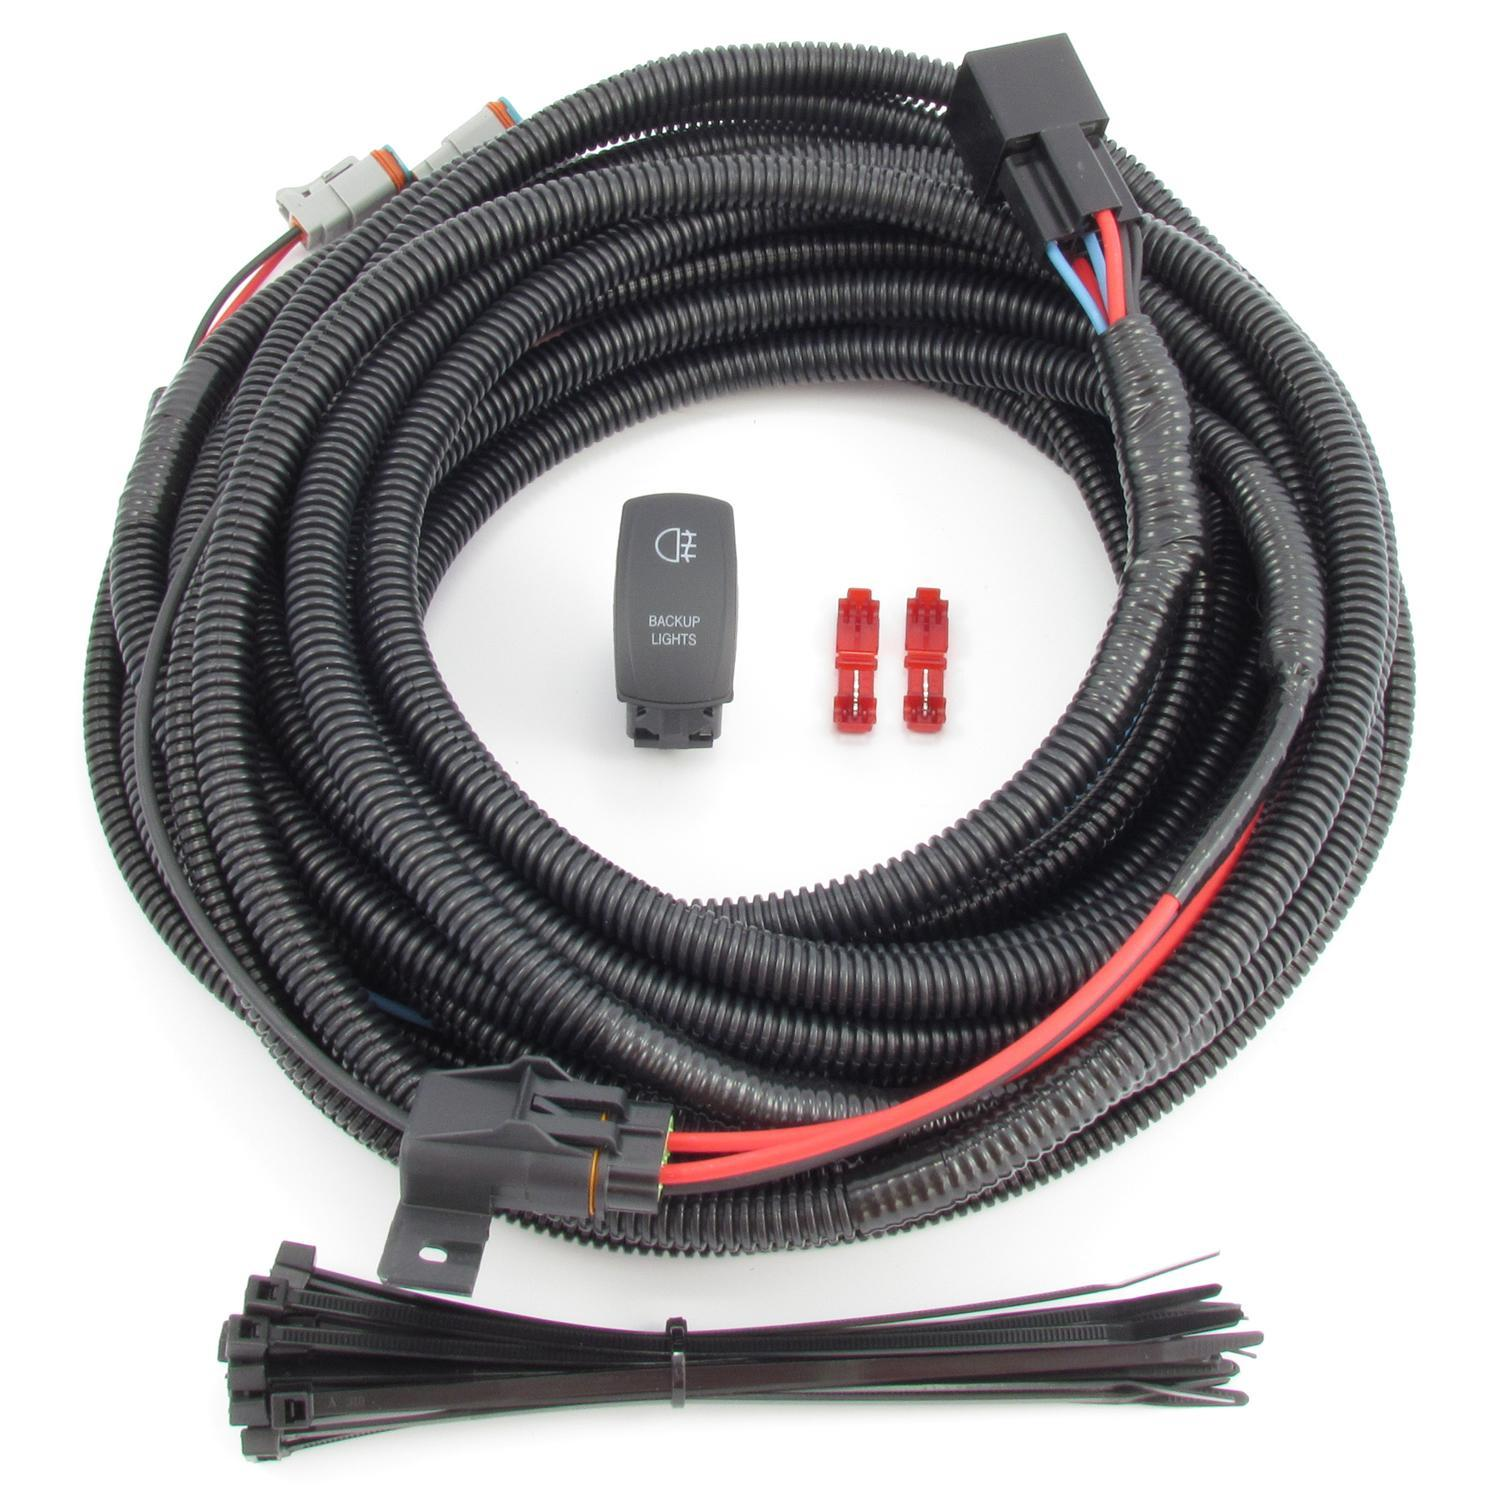 Backup Reverse Lighting Wiring Switch Kit Fits Any Vehicle 5 Wire Hitch Harness Auxiliary All Truck Suv